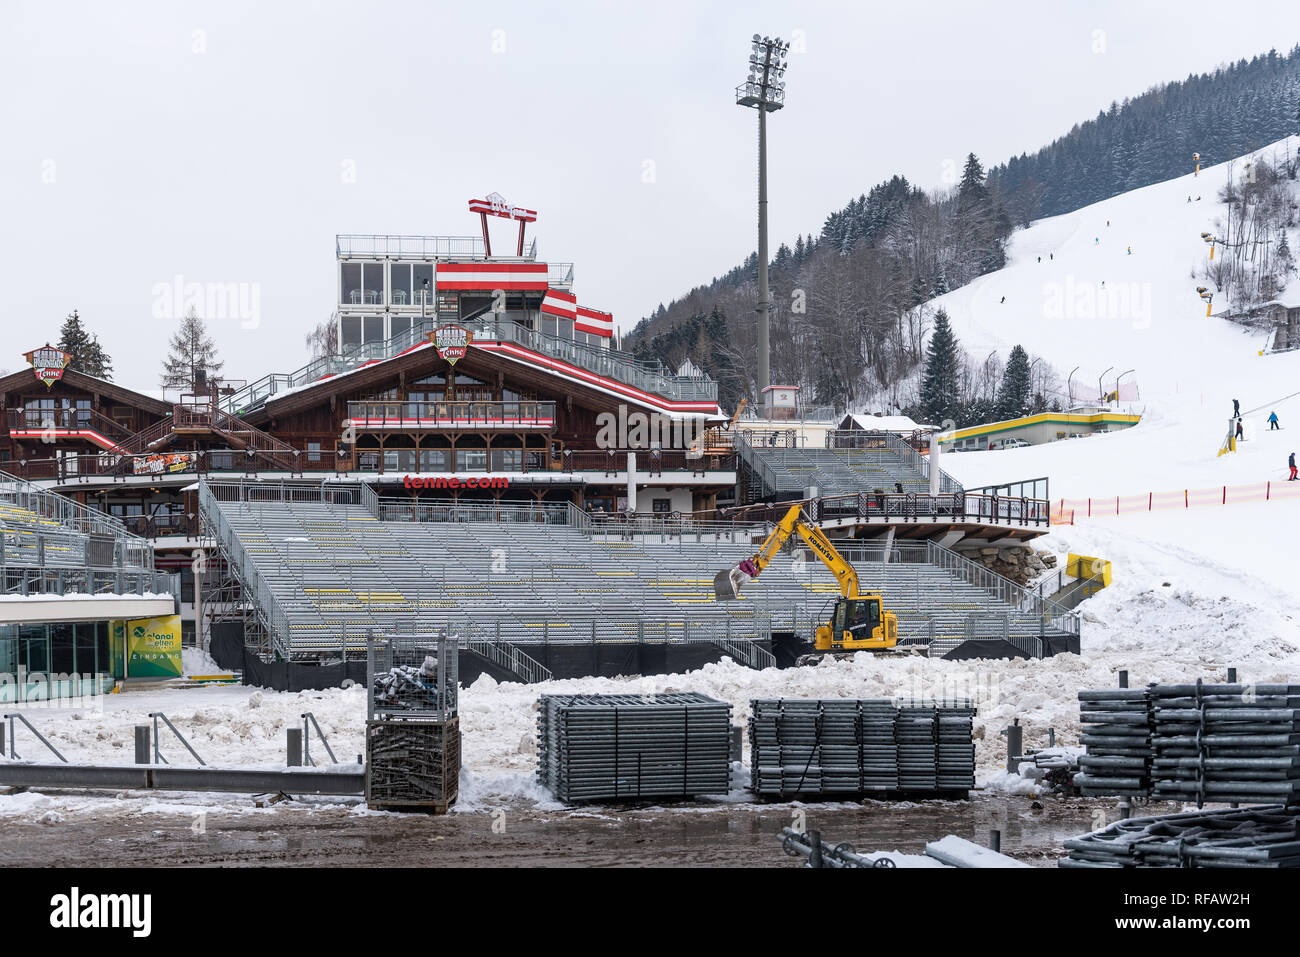 Schladming, Styria, Austria. 24th Jan, 2019. Construction works on Planai Stadium befor The Nightrace in Schladming, Men's World Cup Night Slalom 29.01.2019 - 22nd Night Slalom on the Planai Credit: Tomasz Koryl/Alamy Live News - Stock Image